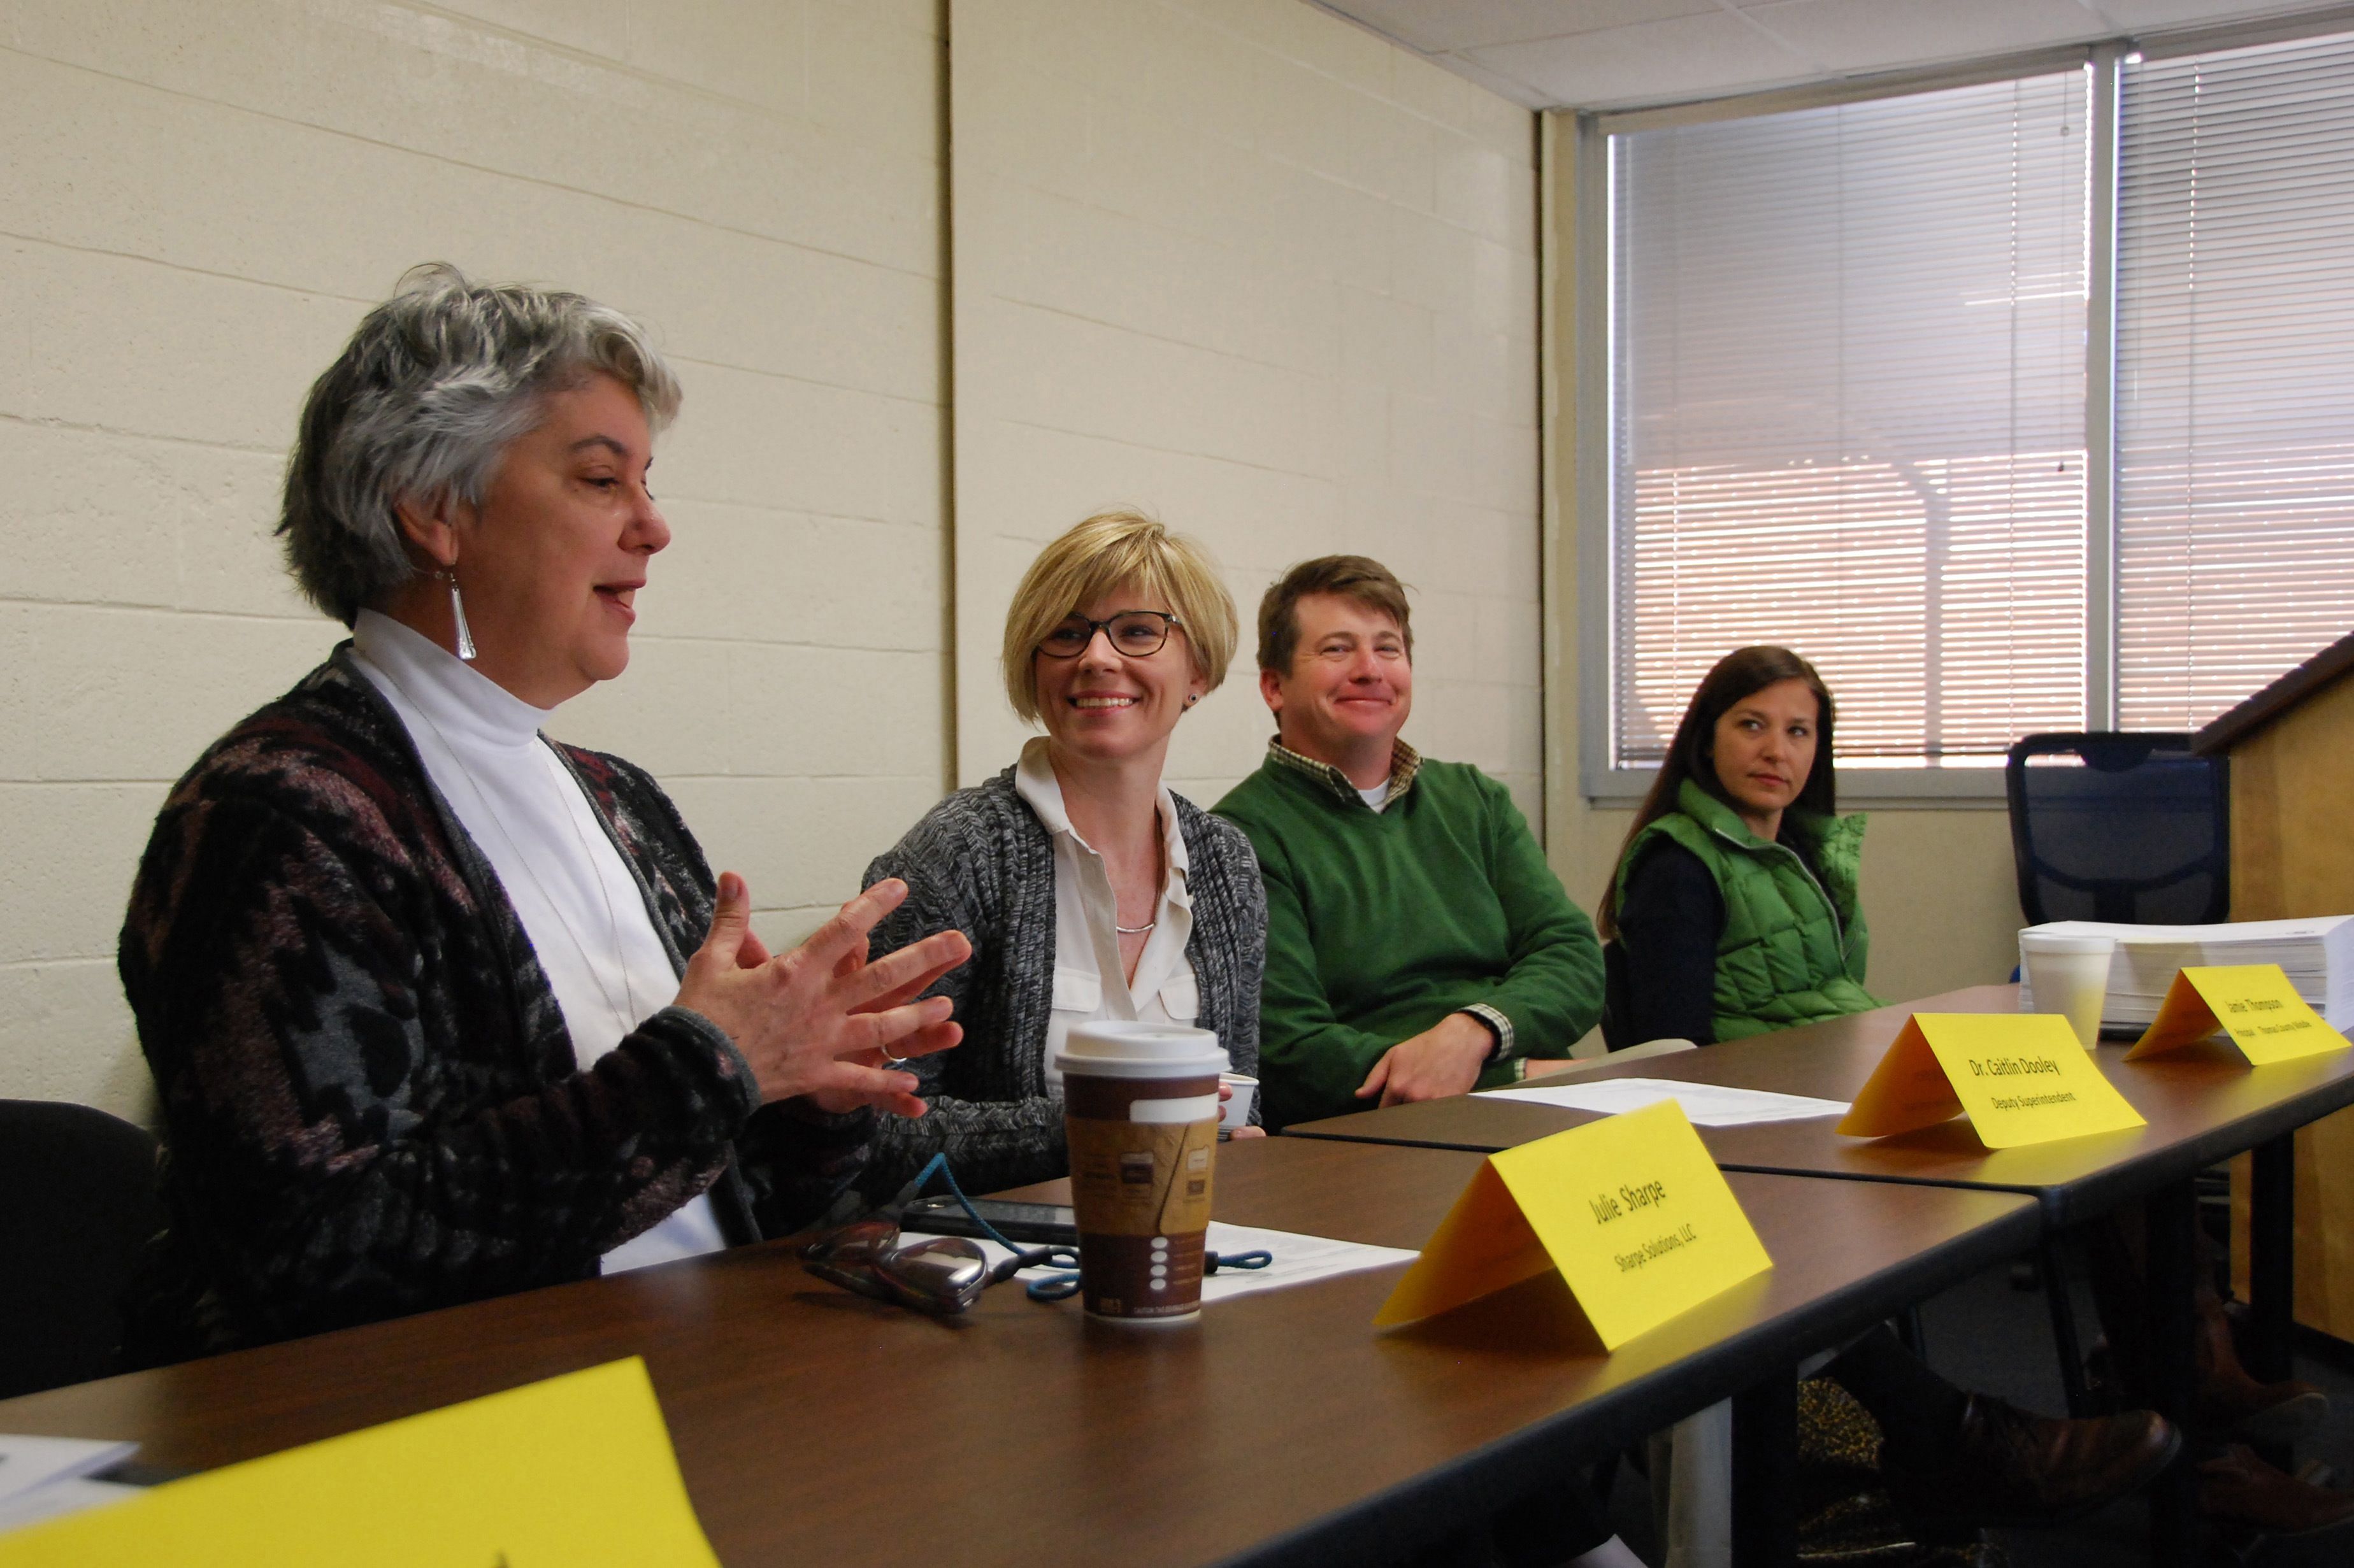 Dooley meets with school administrators.